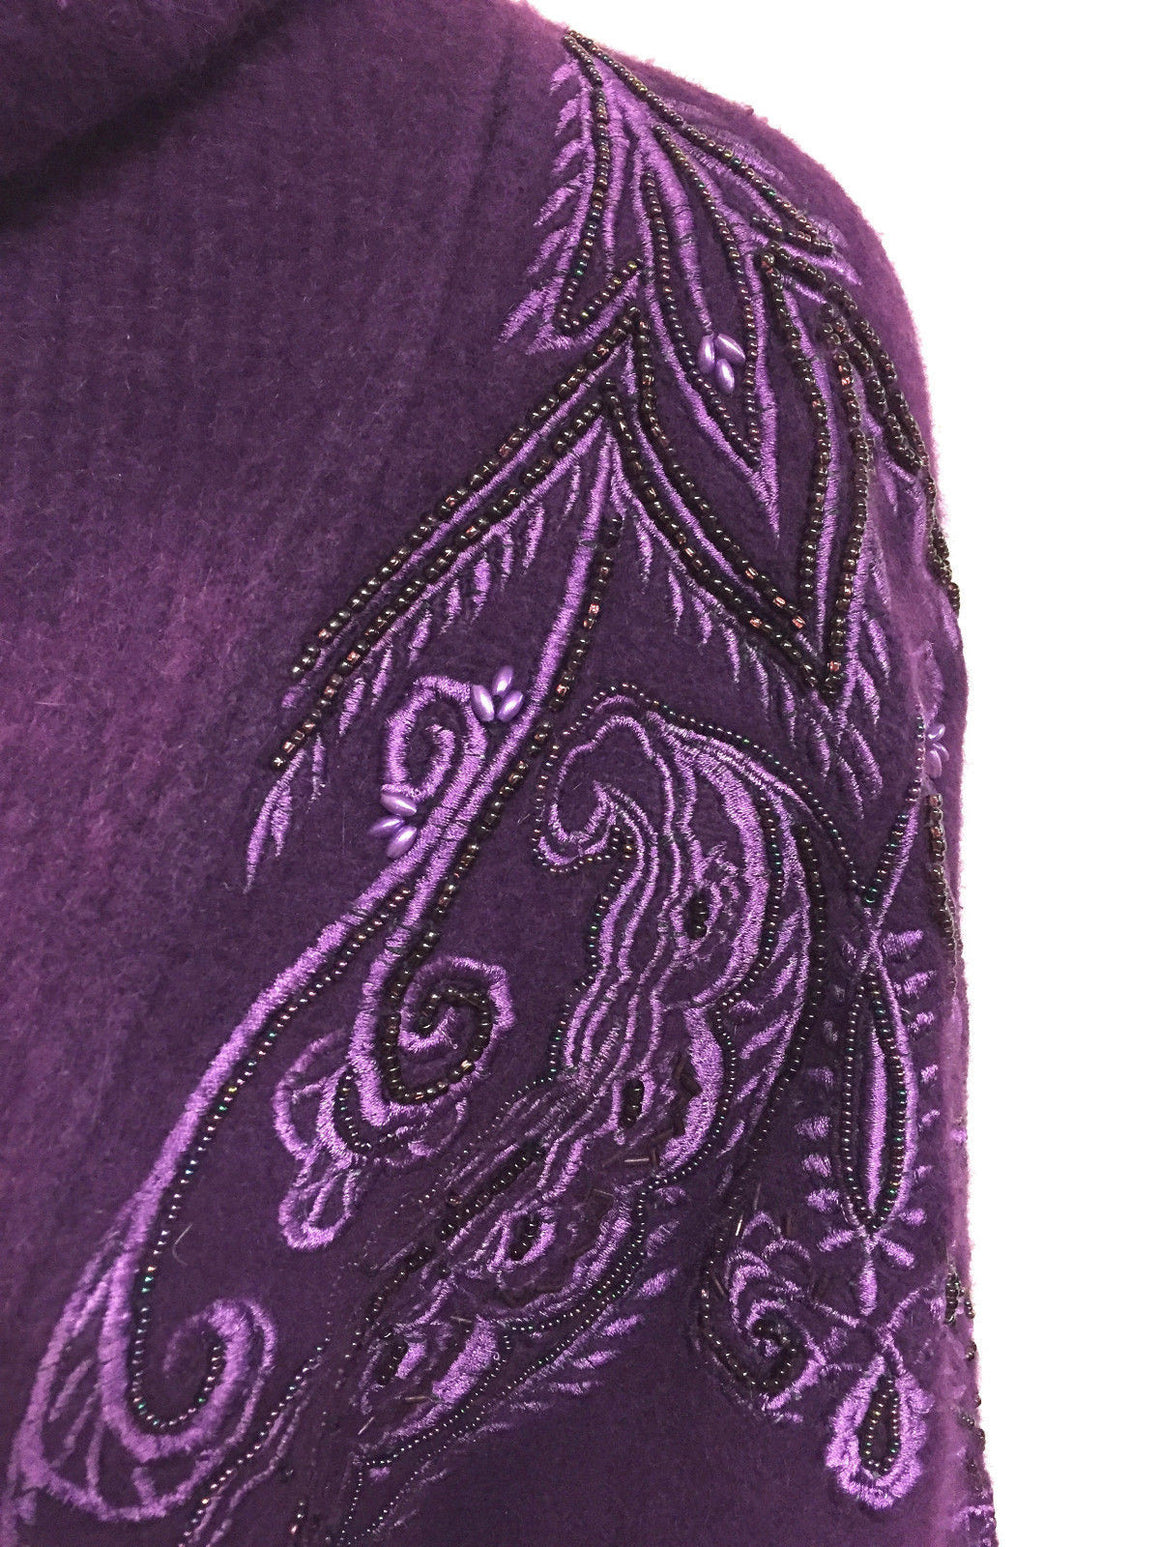 bisbiz.com EREZ Vintage Purple Wool/Angora Blend Beaded & Embroidered Bat-Wing Turtleneck Sweater Top Size: Large - Bis Luxury Resale